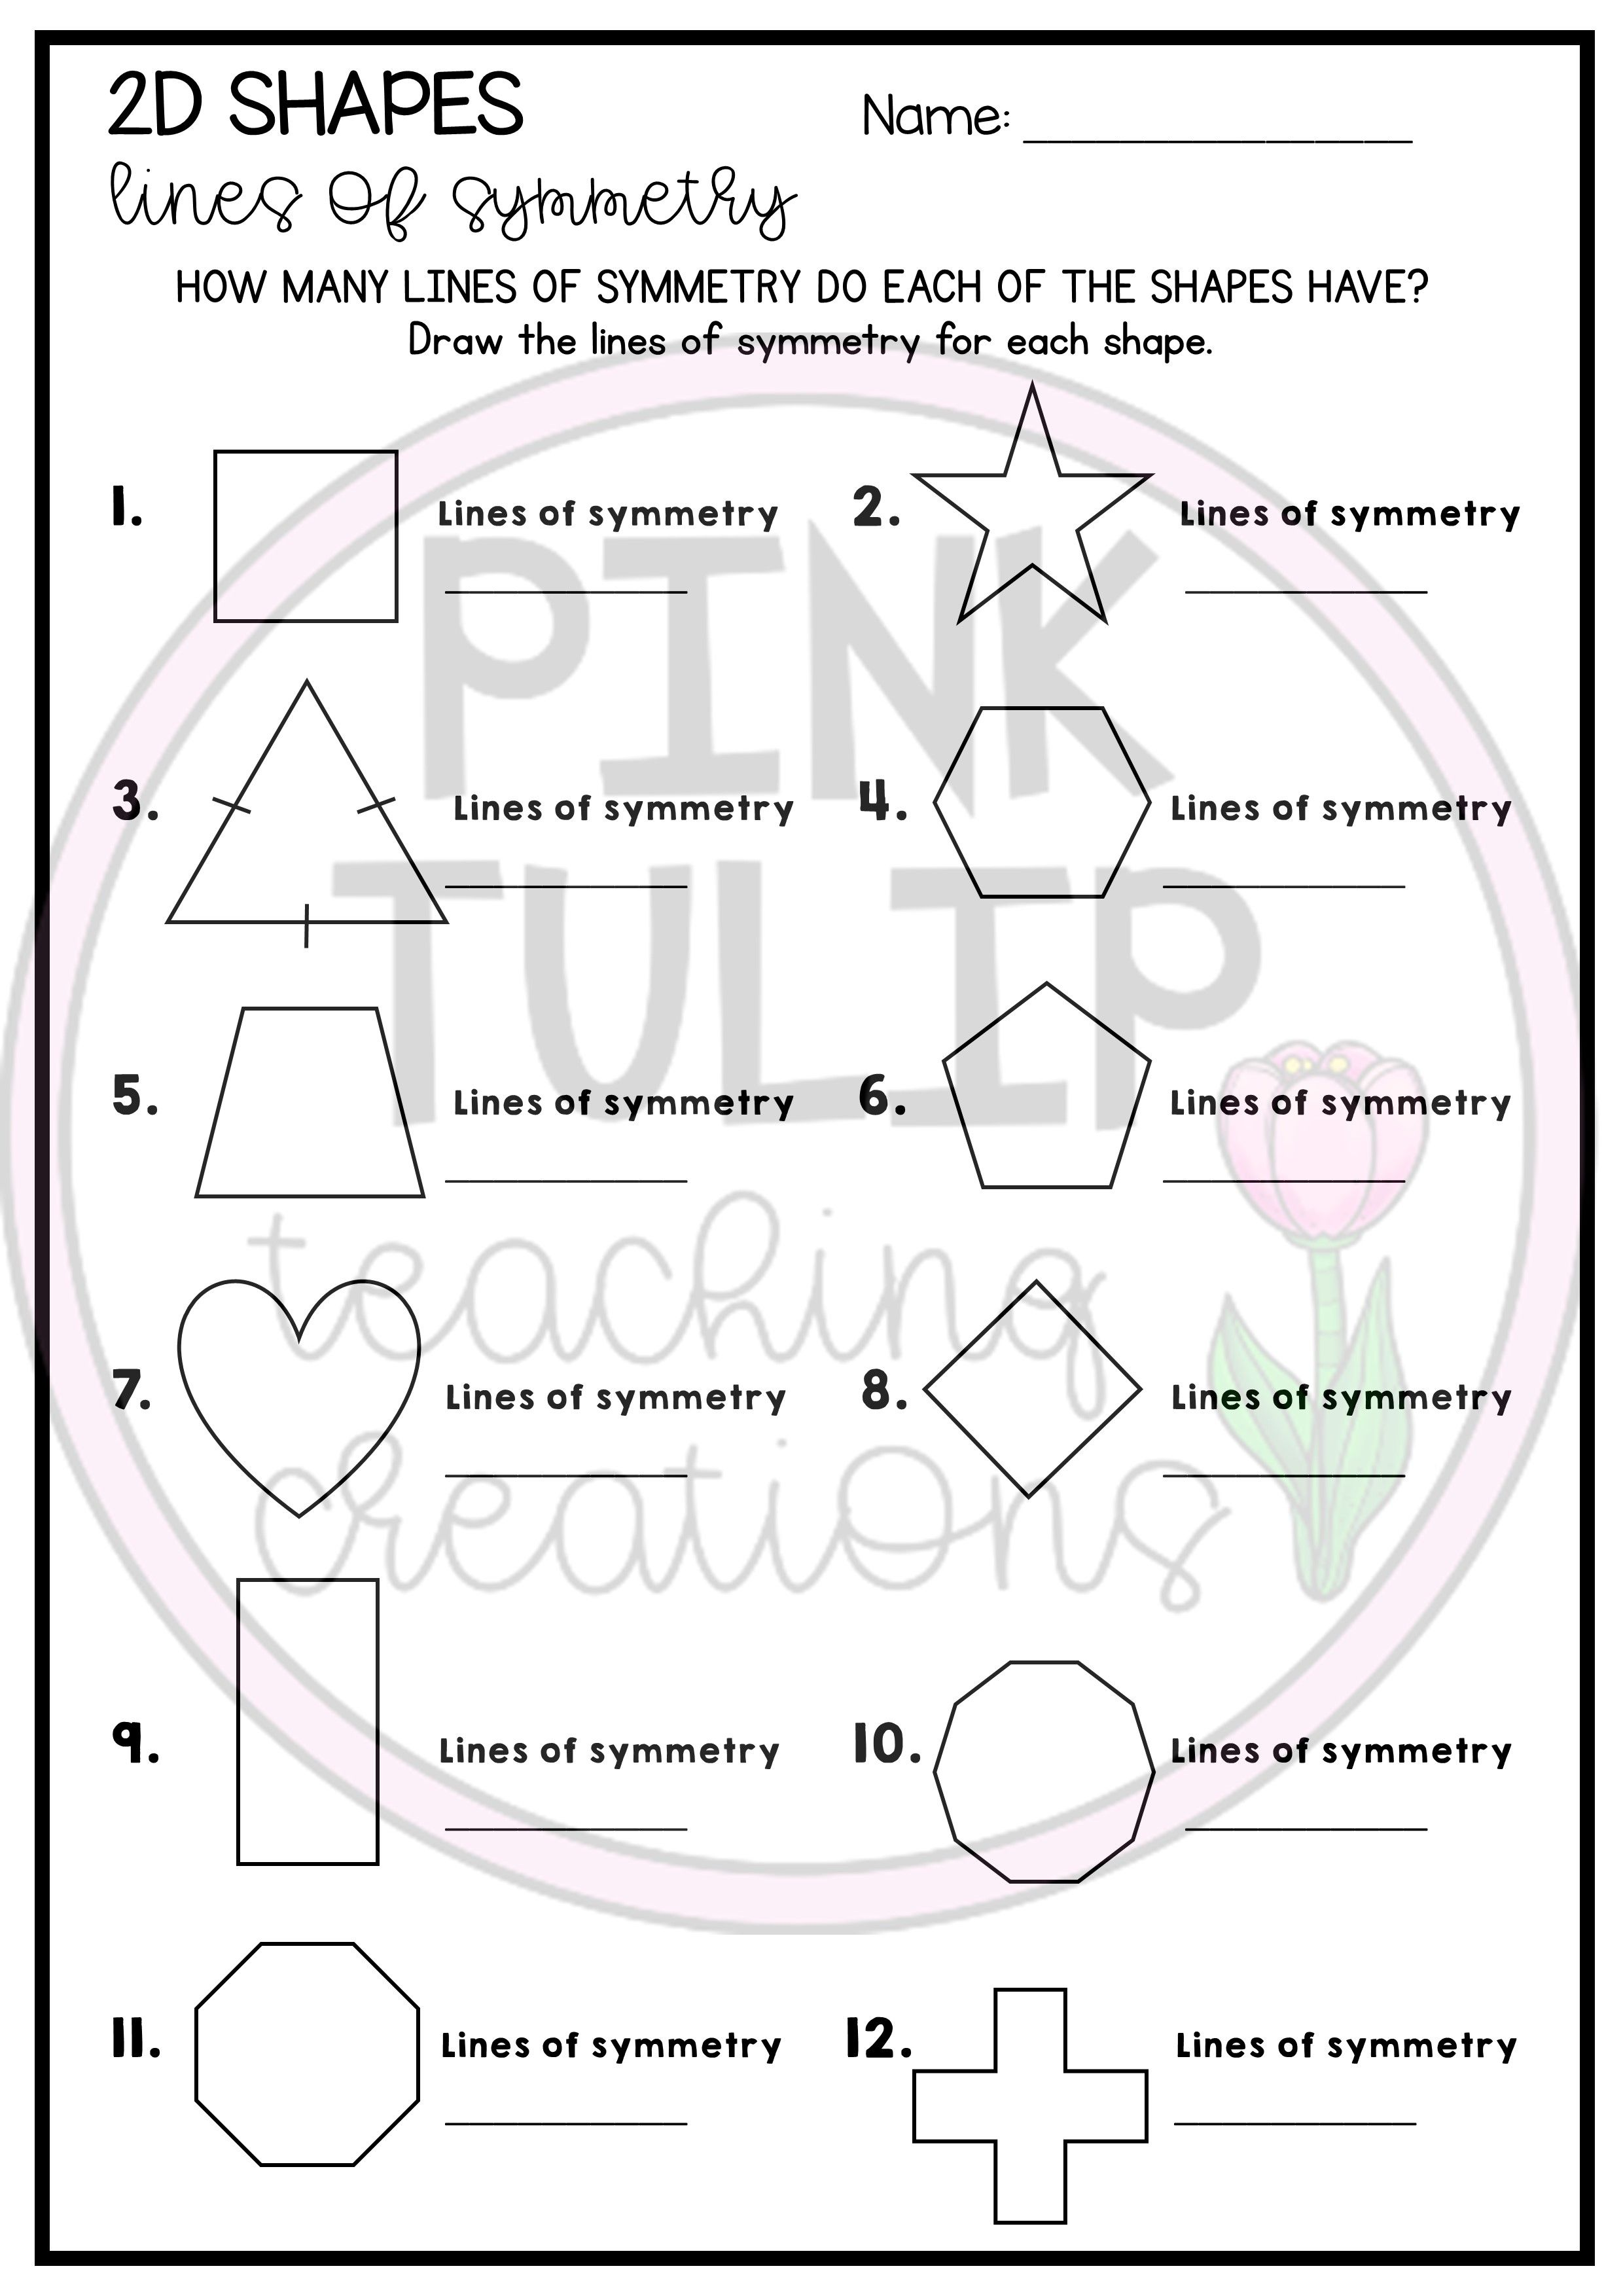 2d Shapes Lines And Patterns